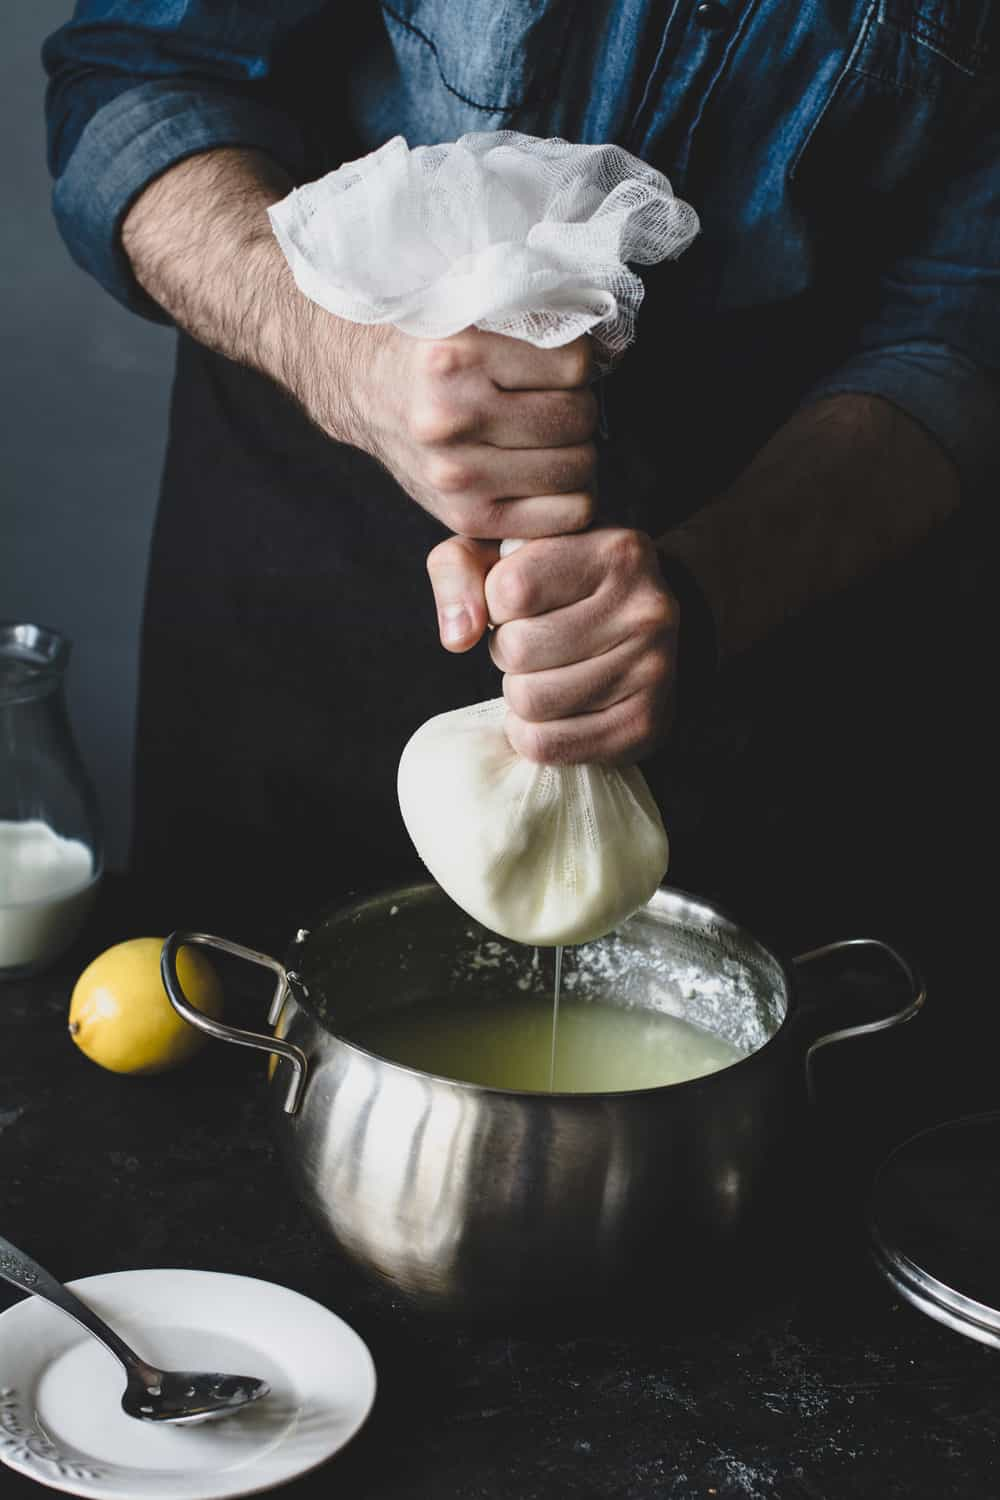 How Complicated Is It to Make Homemade Ricotta Cheese 1